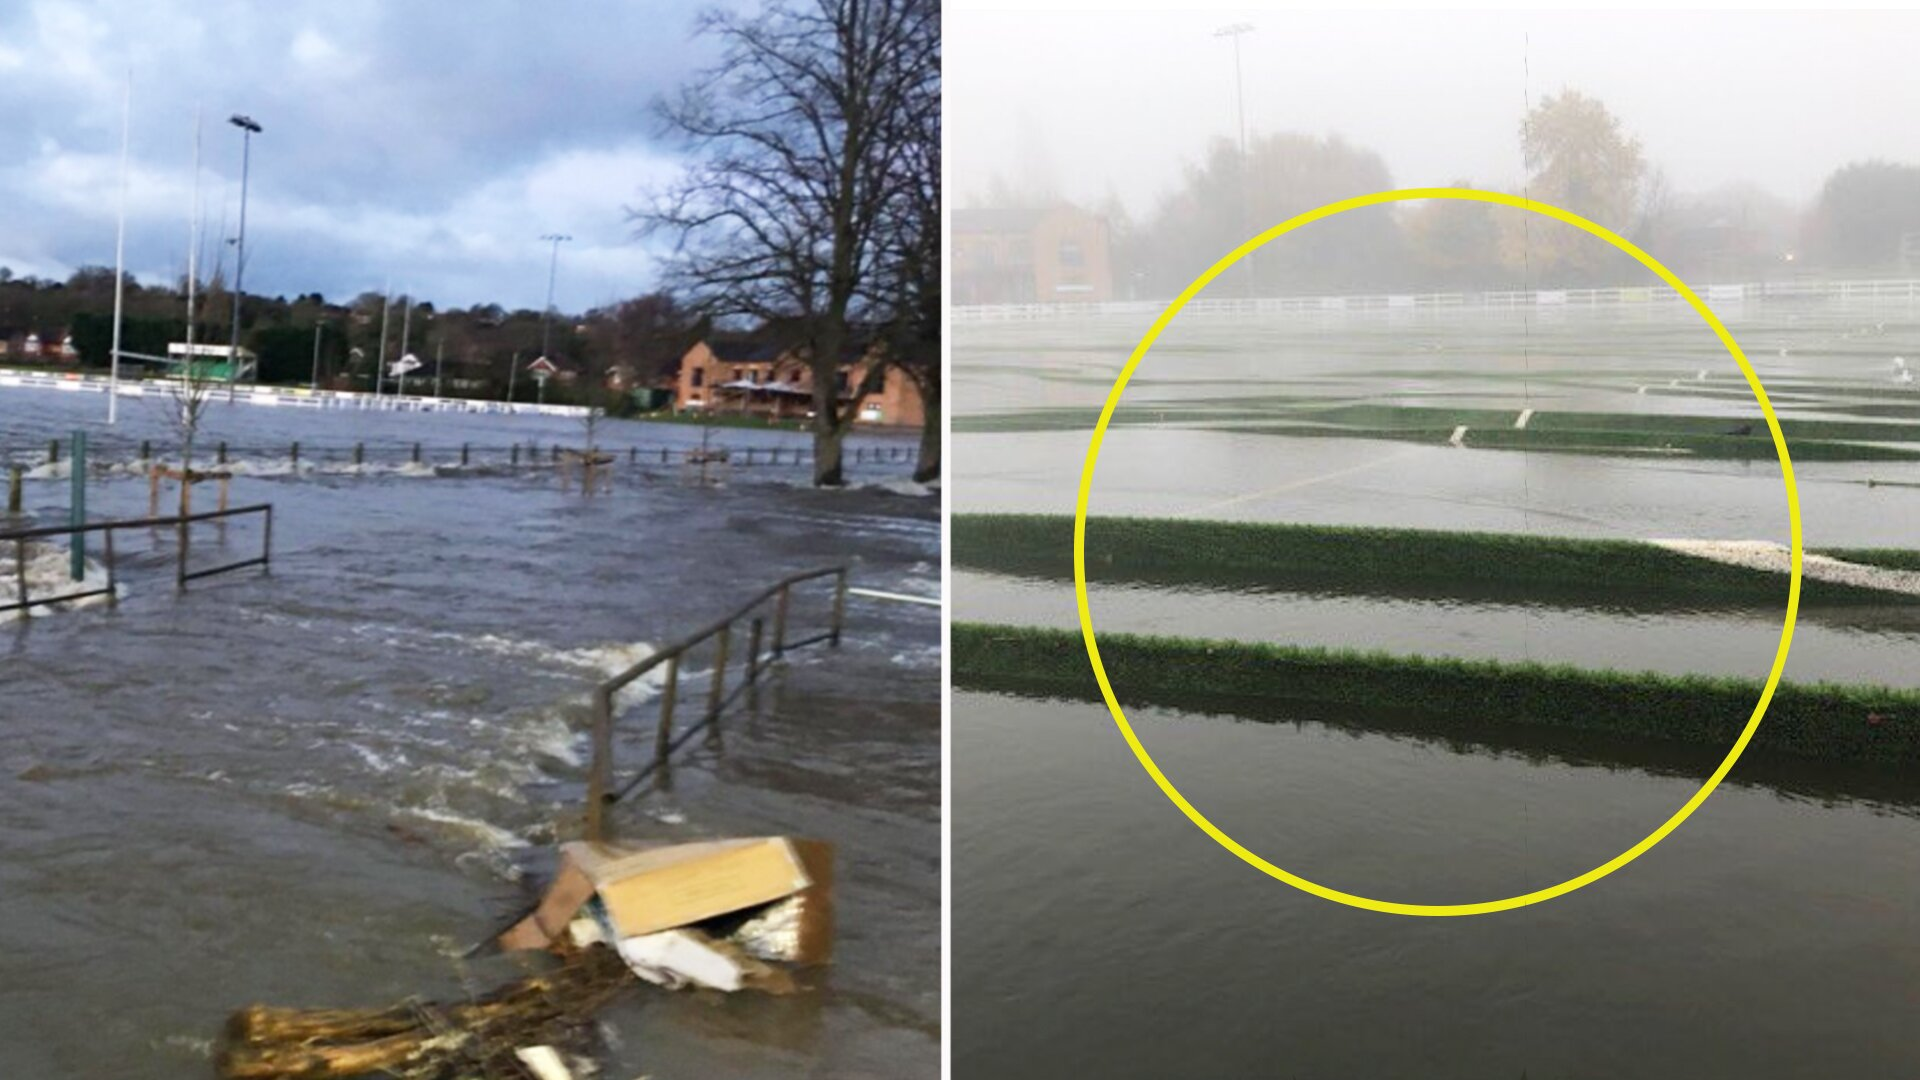 'It's one of the worst RFU investments ever' - despair as Derby RFC pitch is flooded yet again